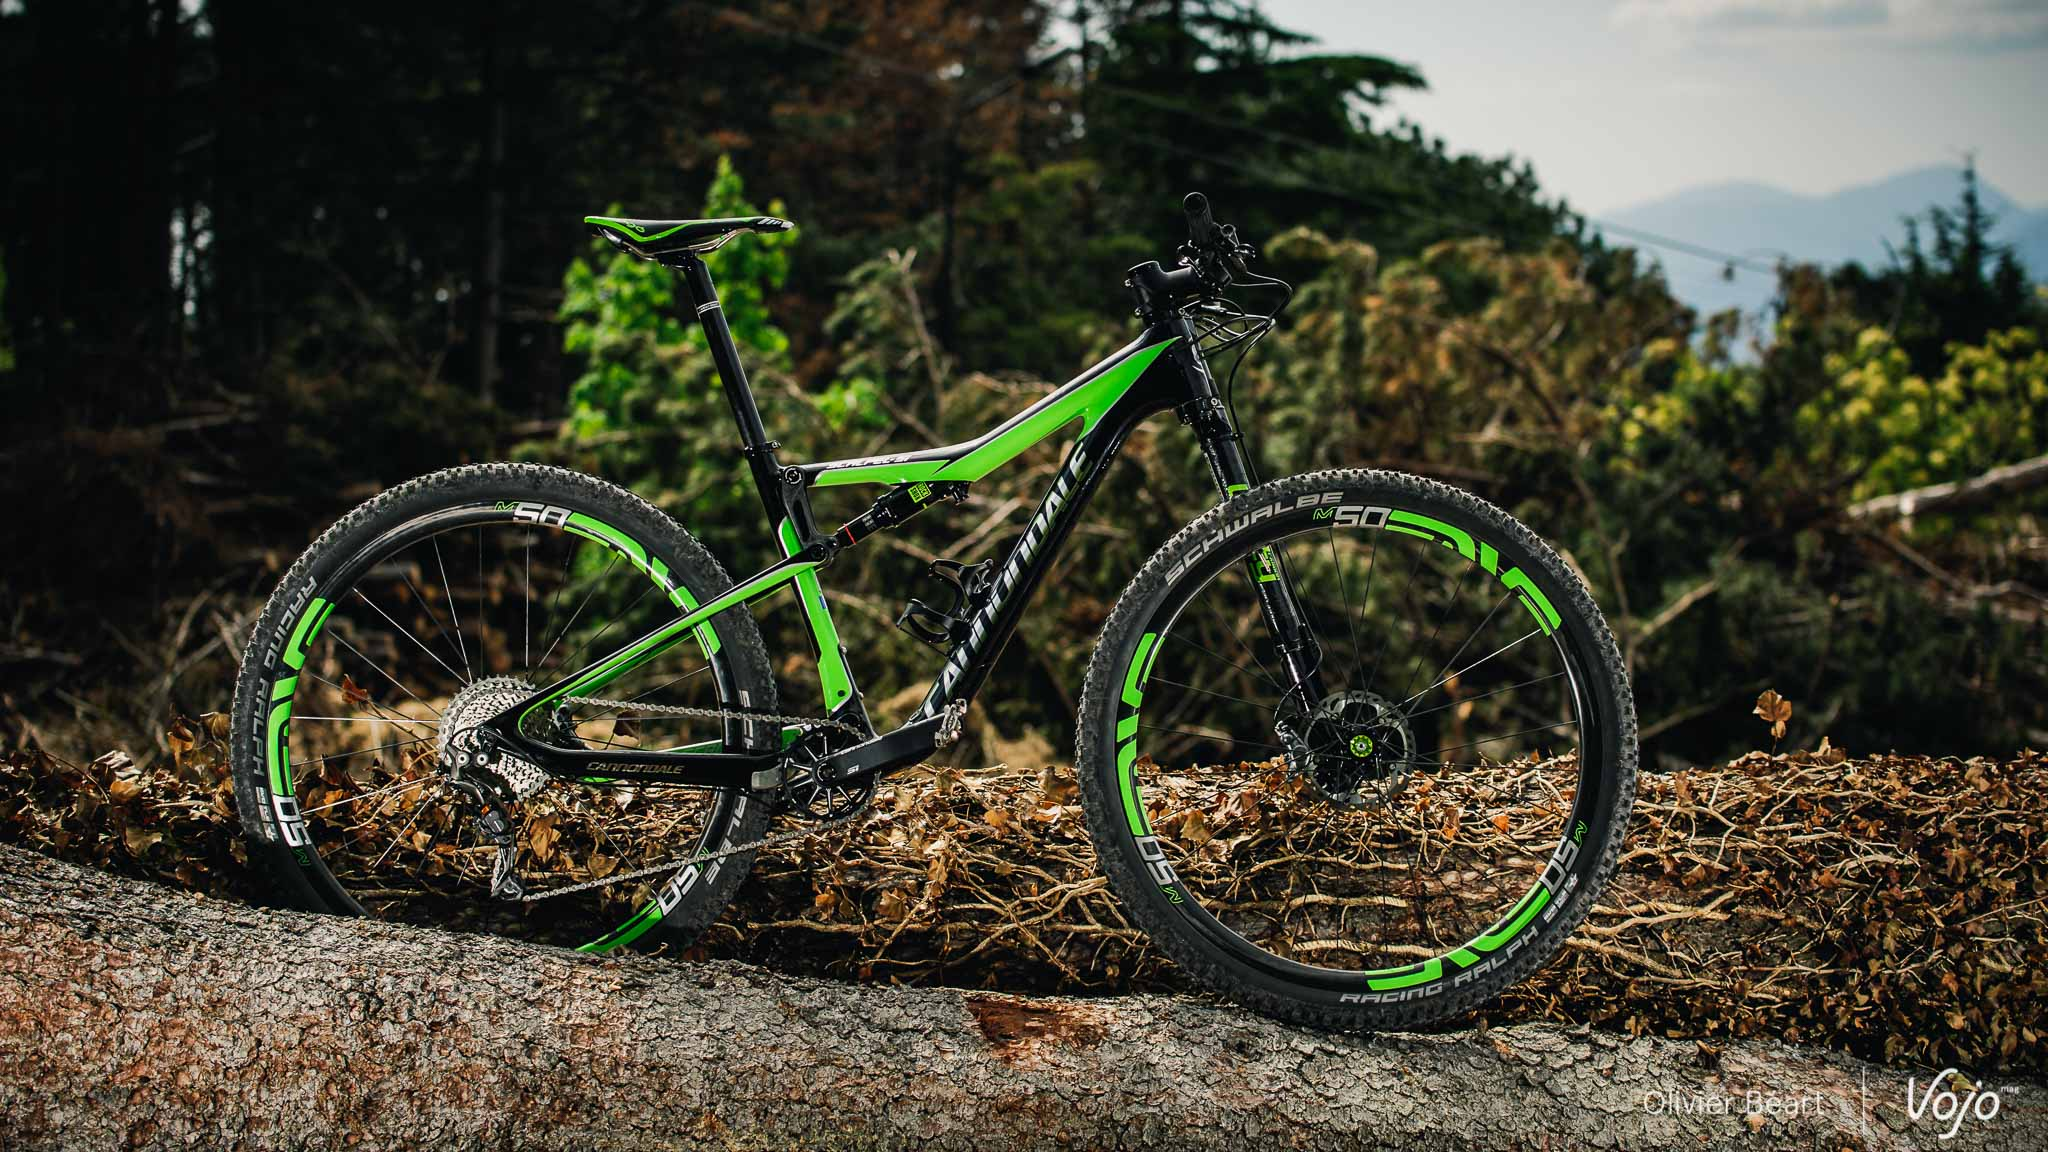 Cannondale_Scalpel_2017_Copyright_OBeart_VojoMag-3